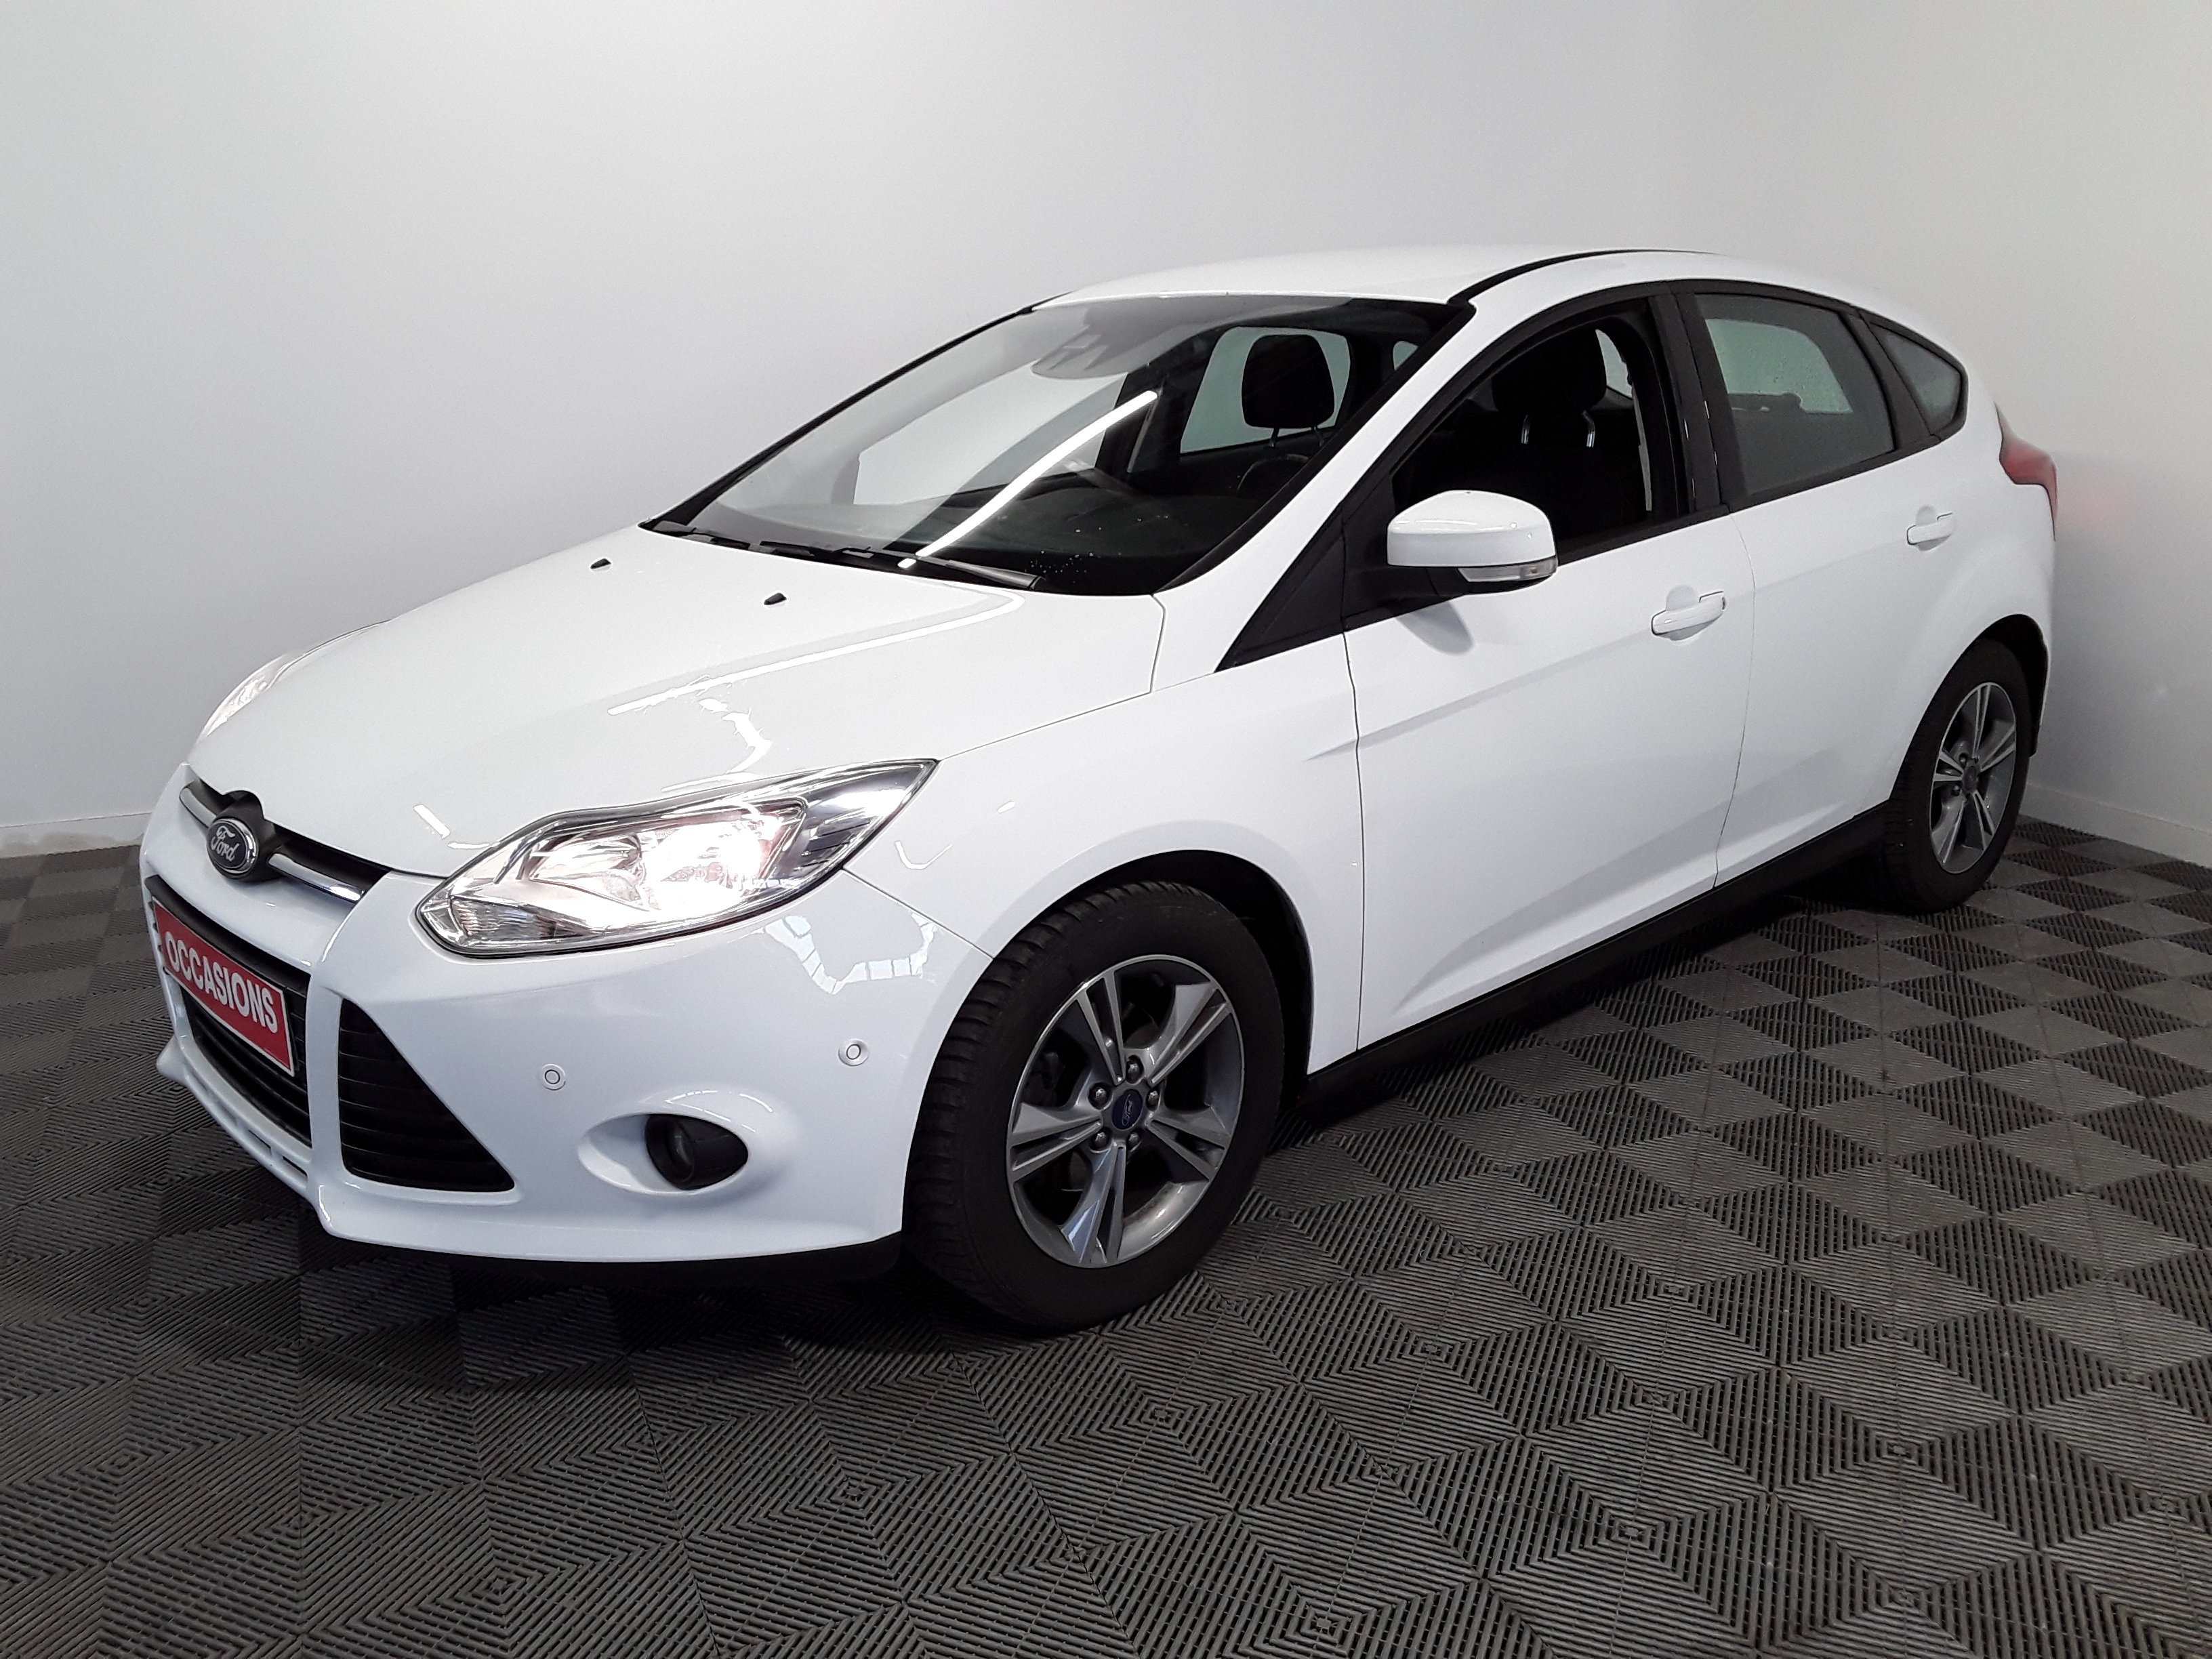 FORD FOCUS 2014 à 7900 € - Photo n°1